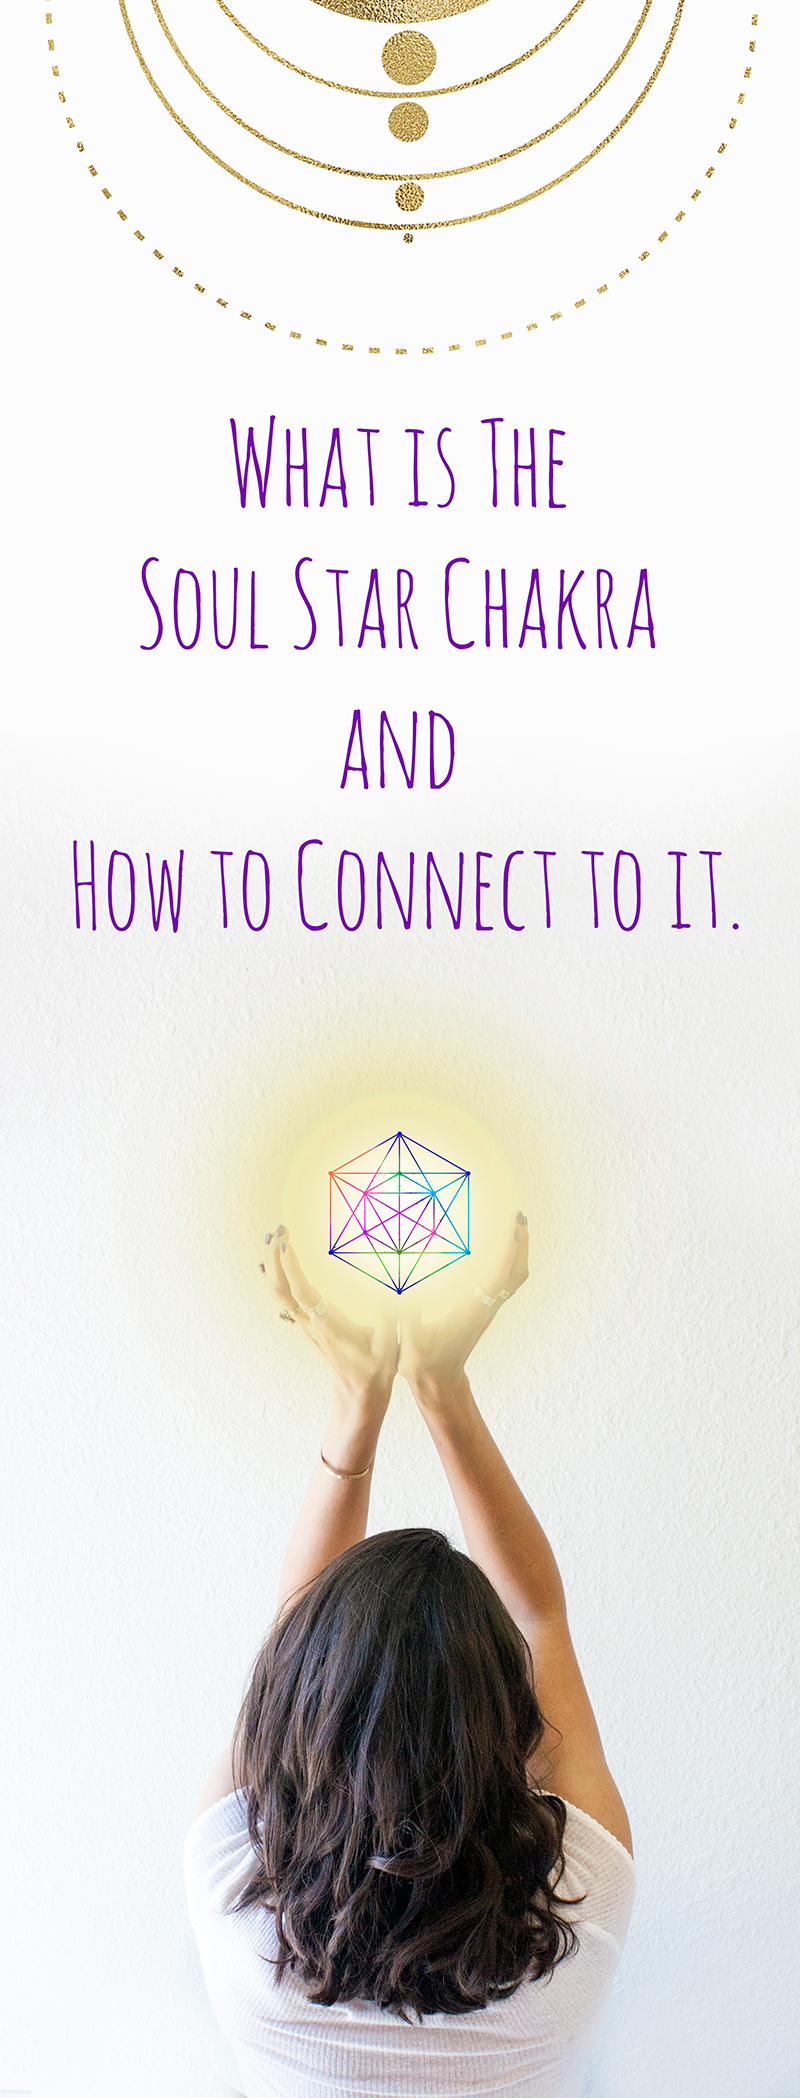 Pic2-What-is-the-soul-star-chakra-and-how-to-connect-to-it